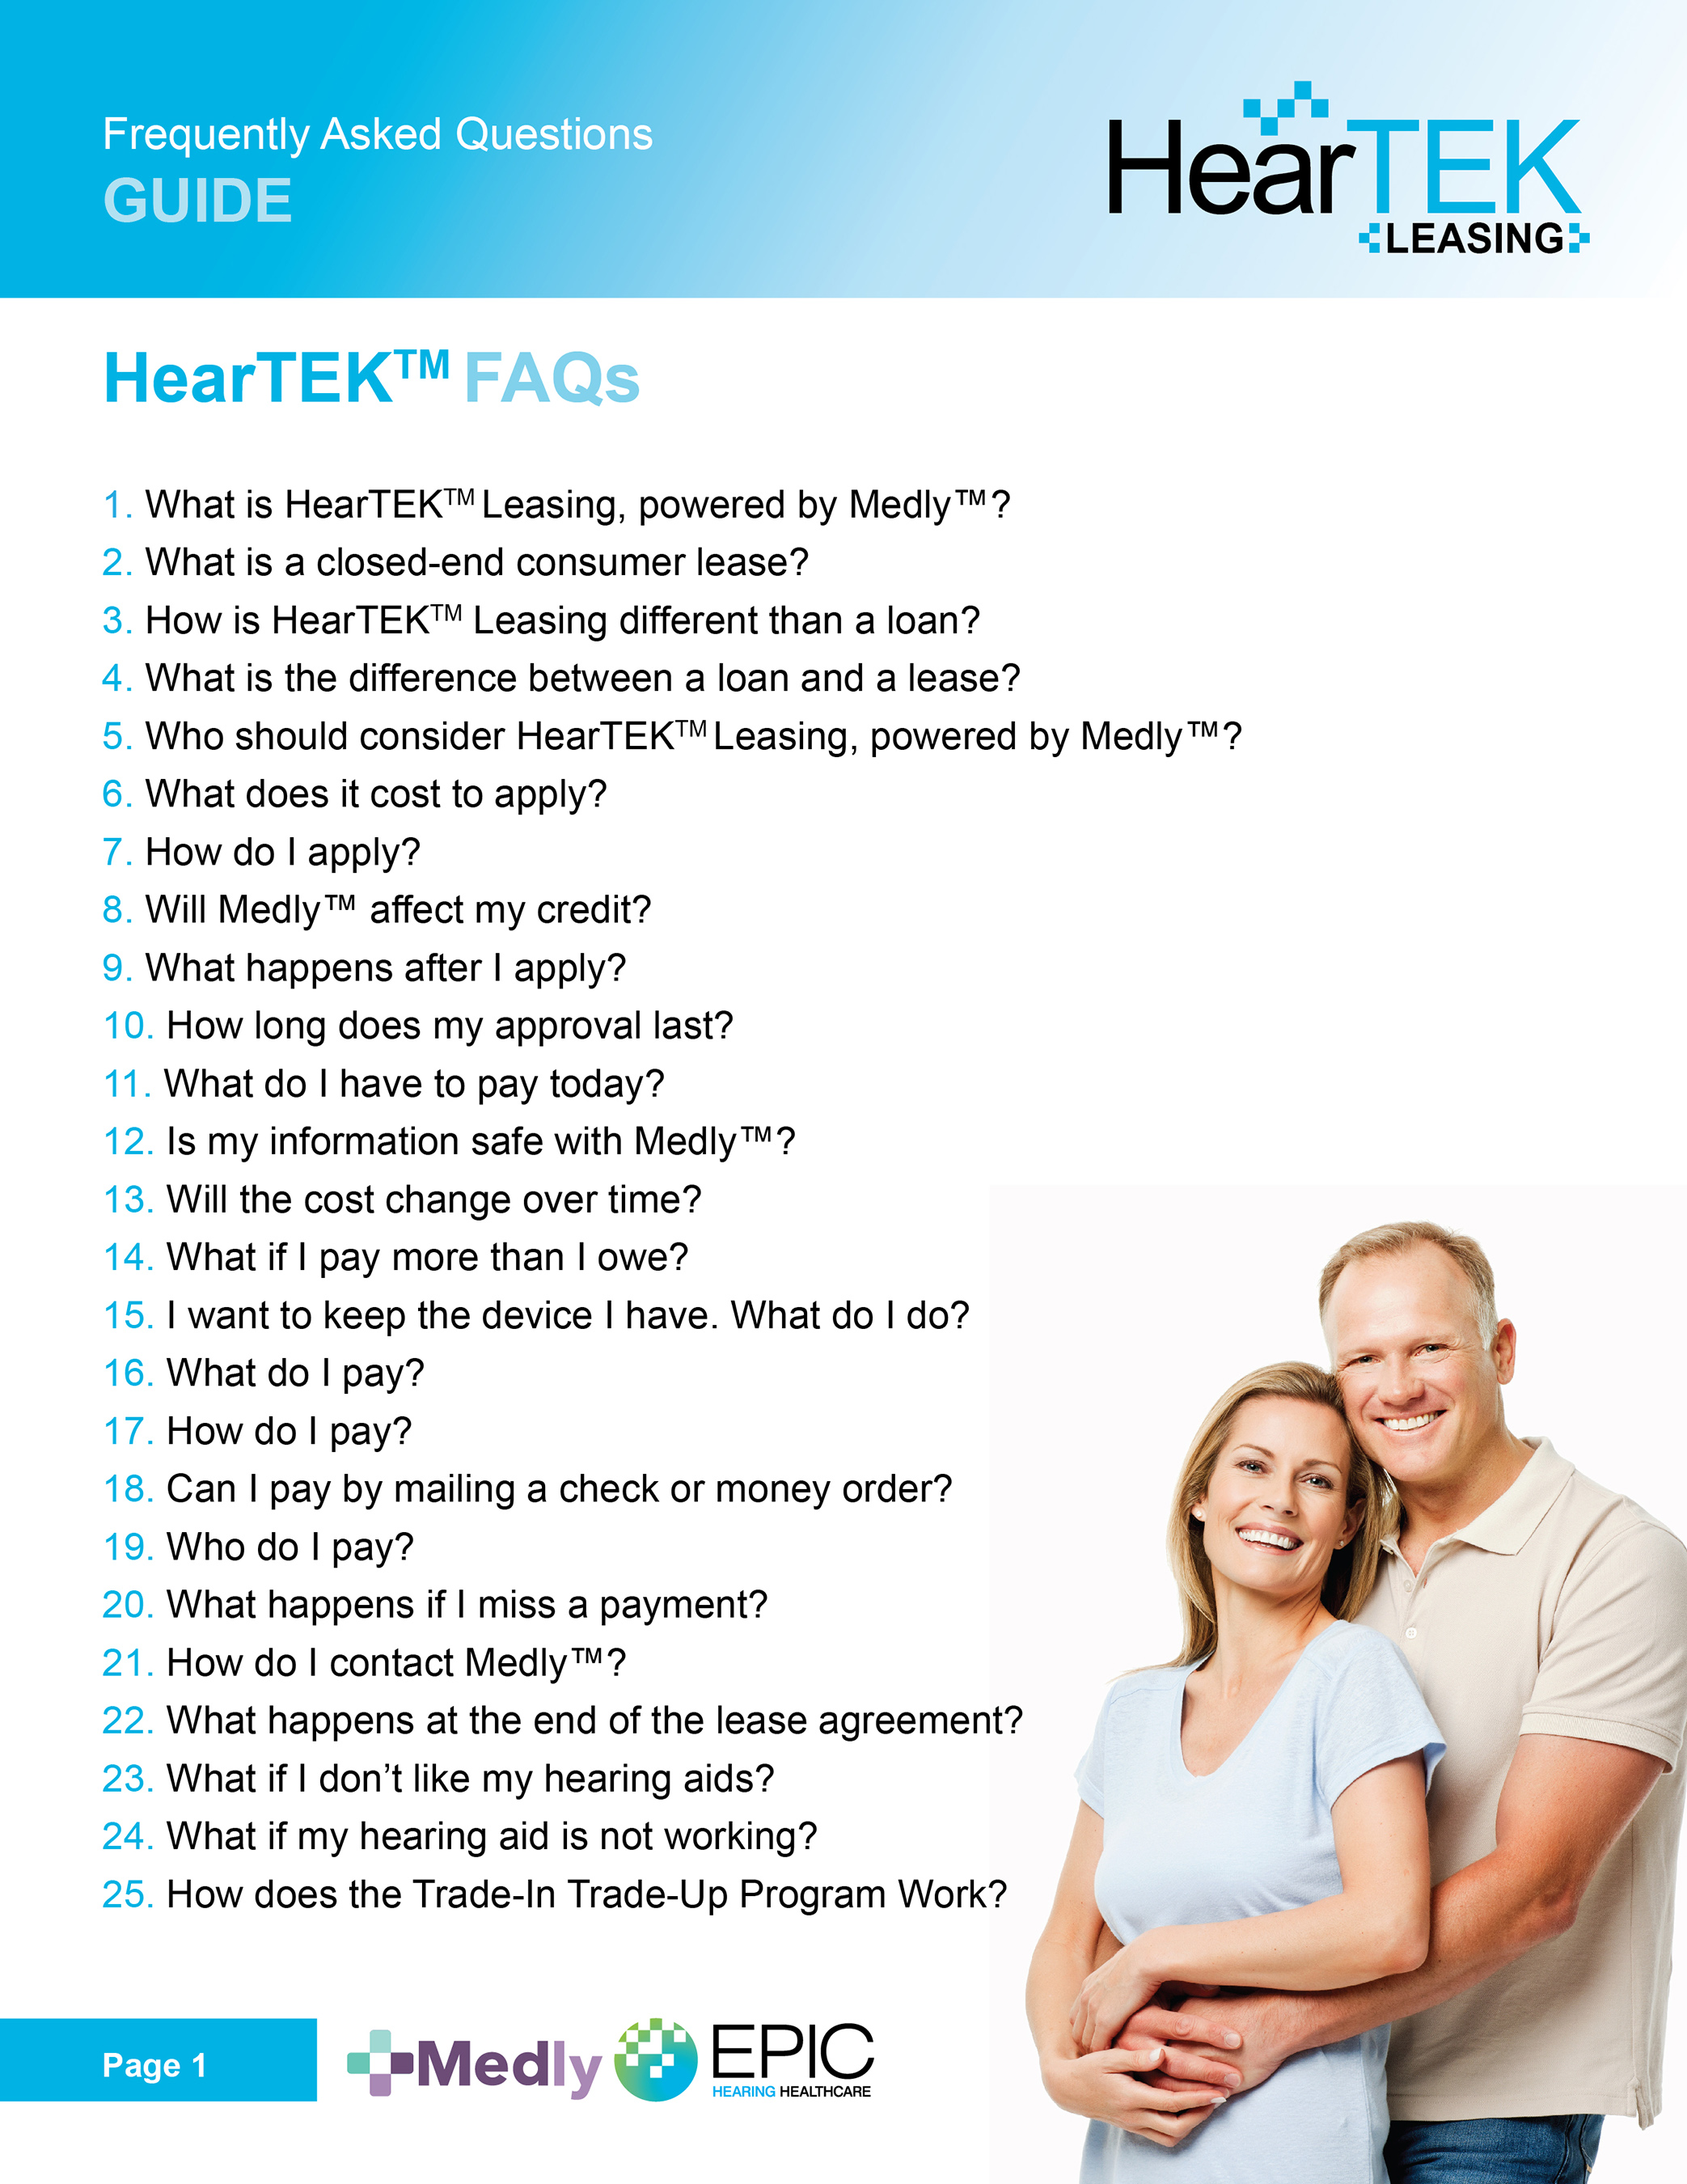 HearTEK Leasing FAQ